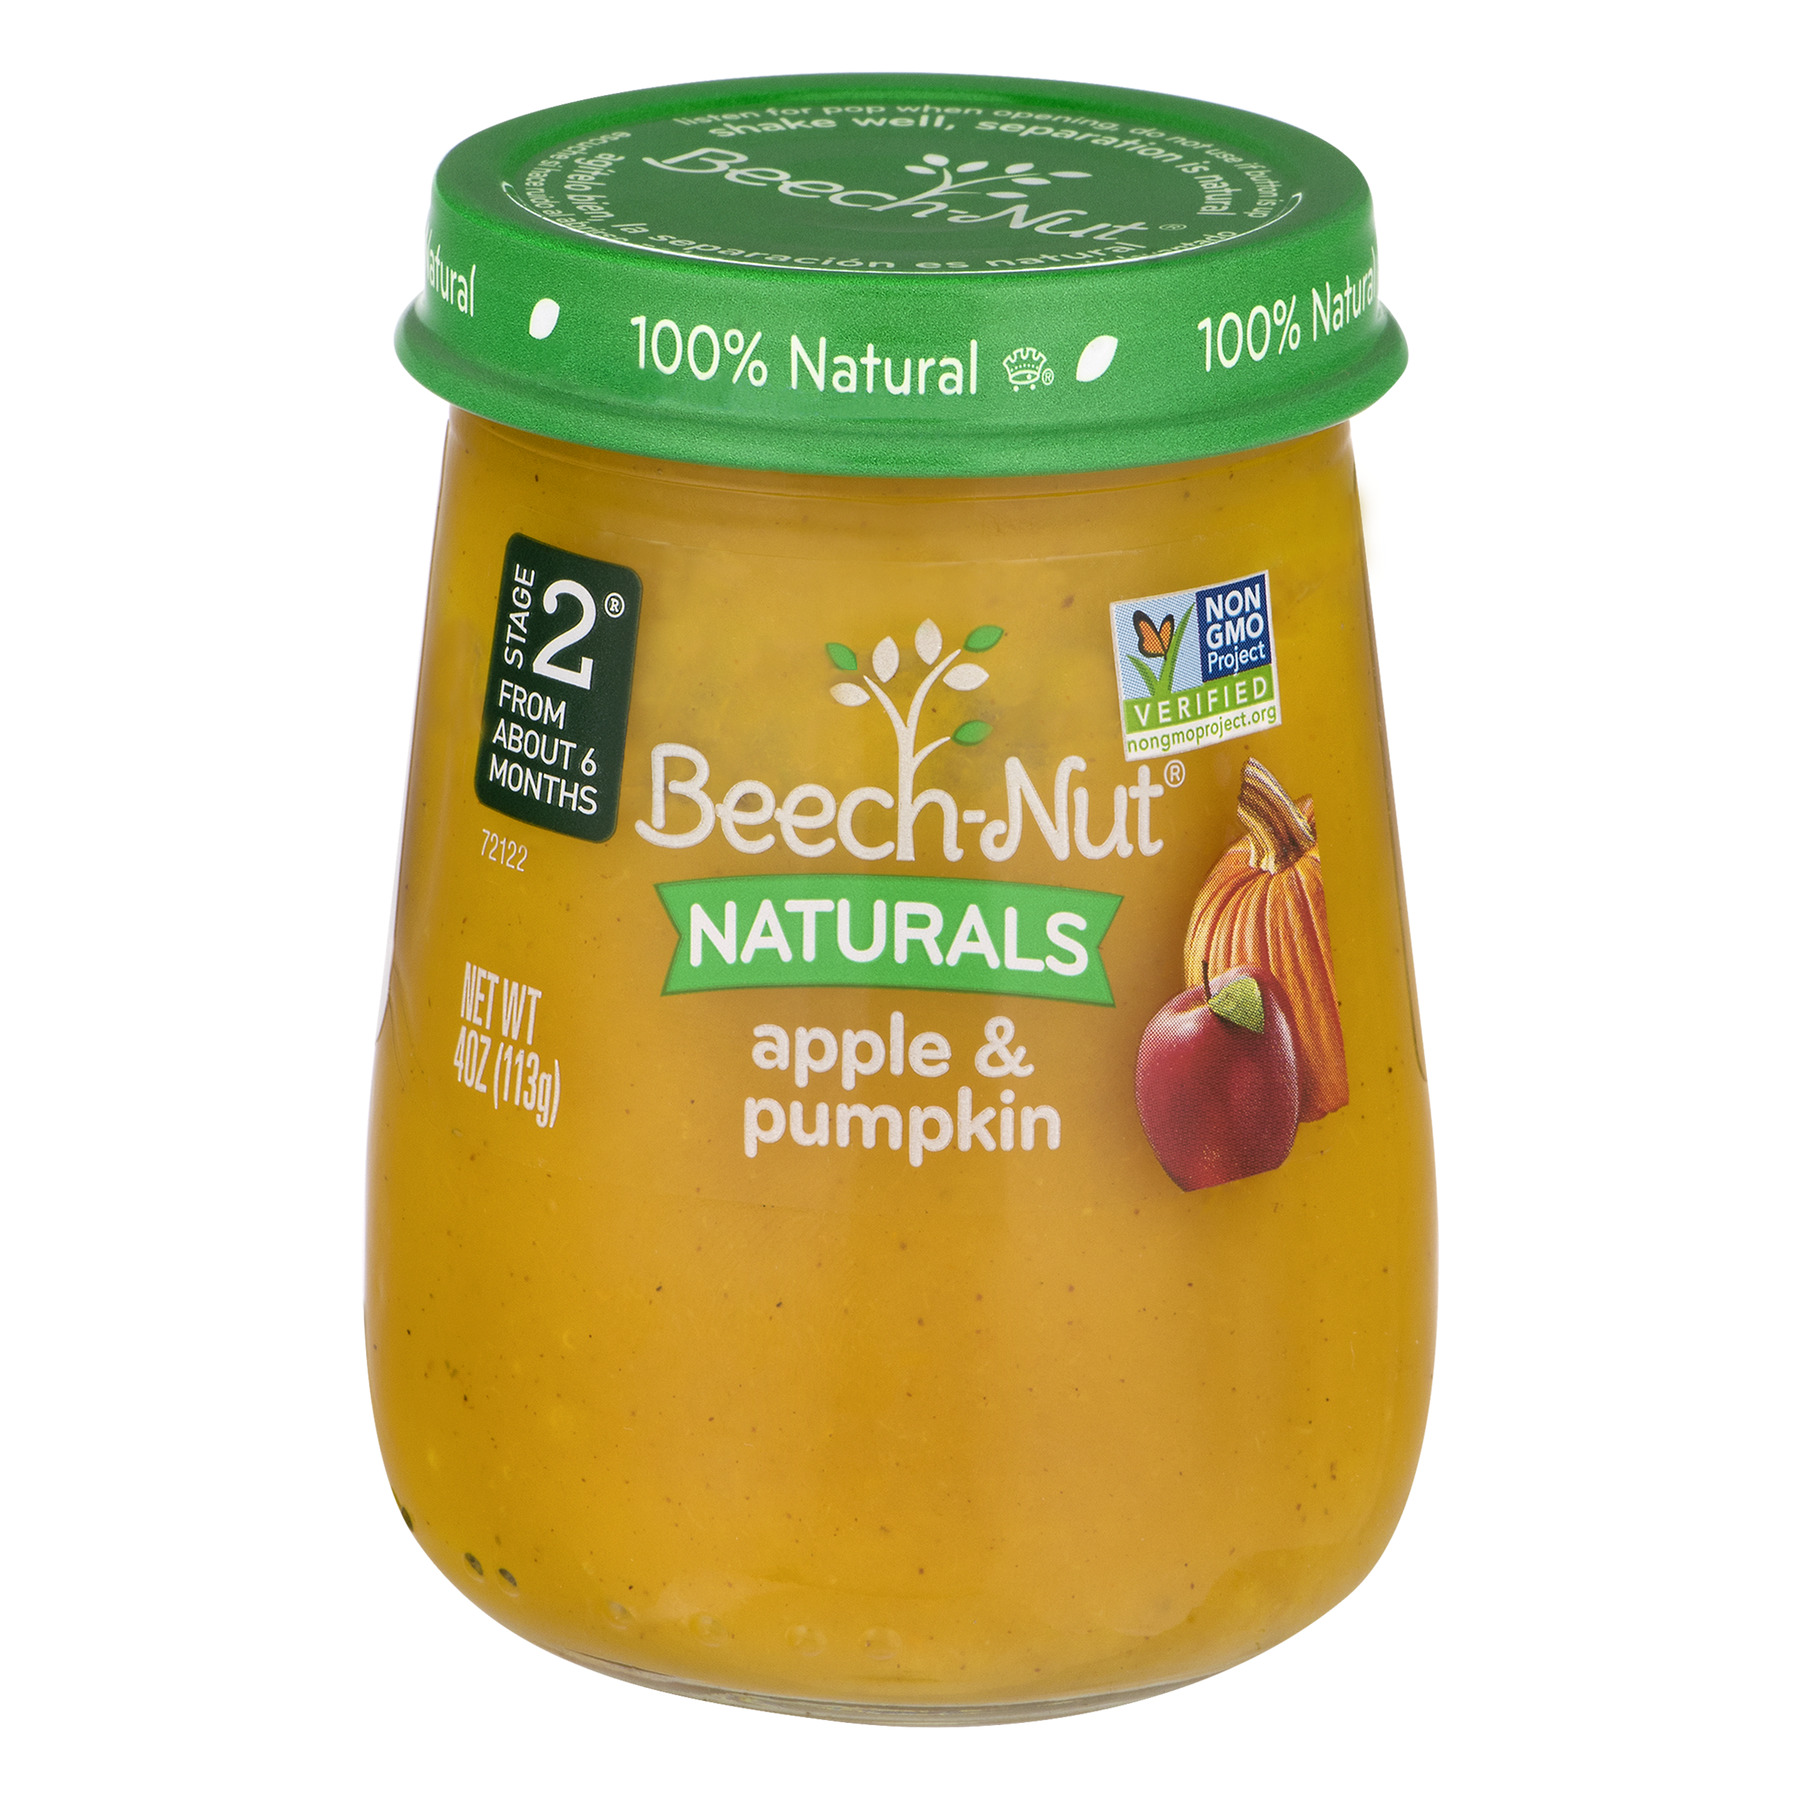 Beech-Nut Naturals 10 Pack Stage 2 Apple & Pumpkin, 4.0 OZ